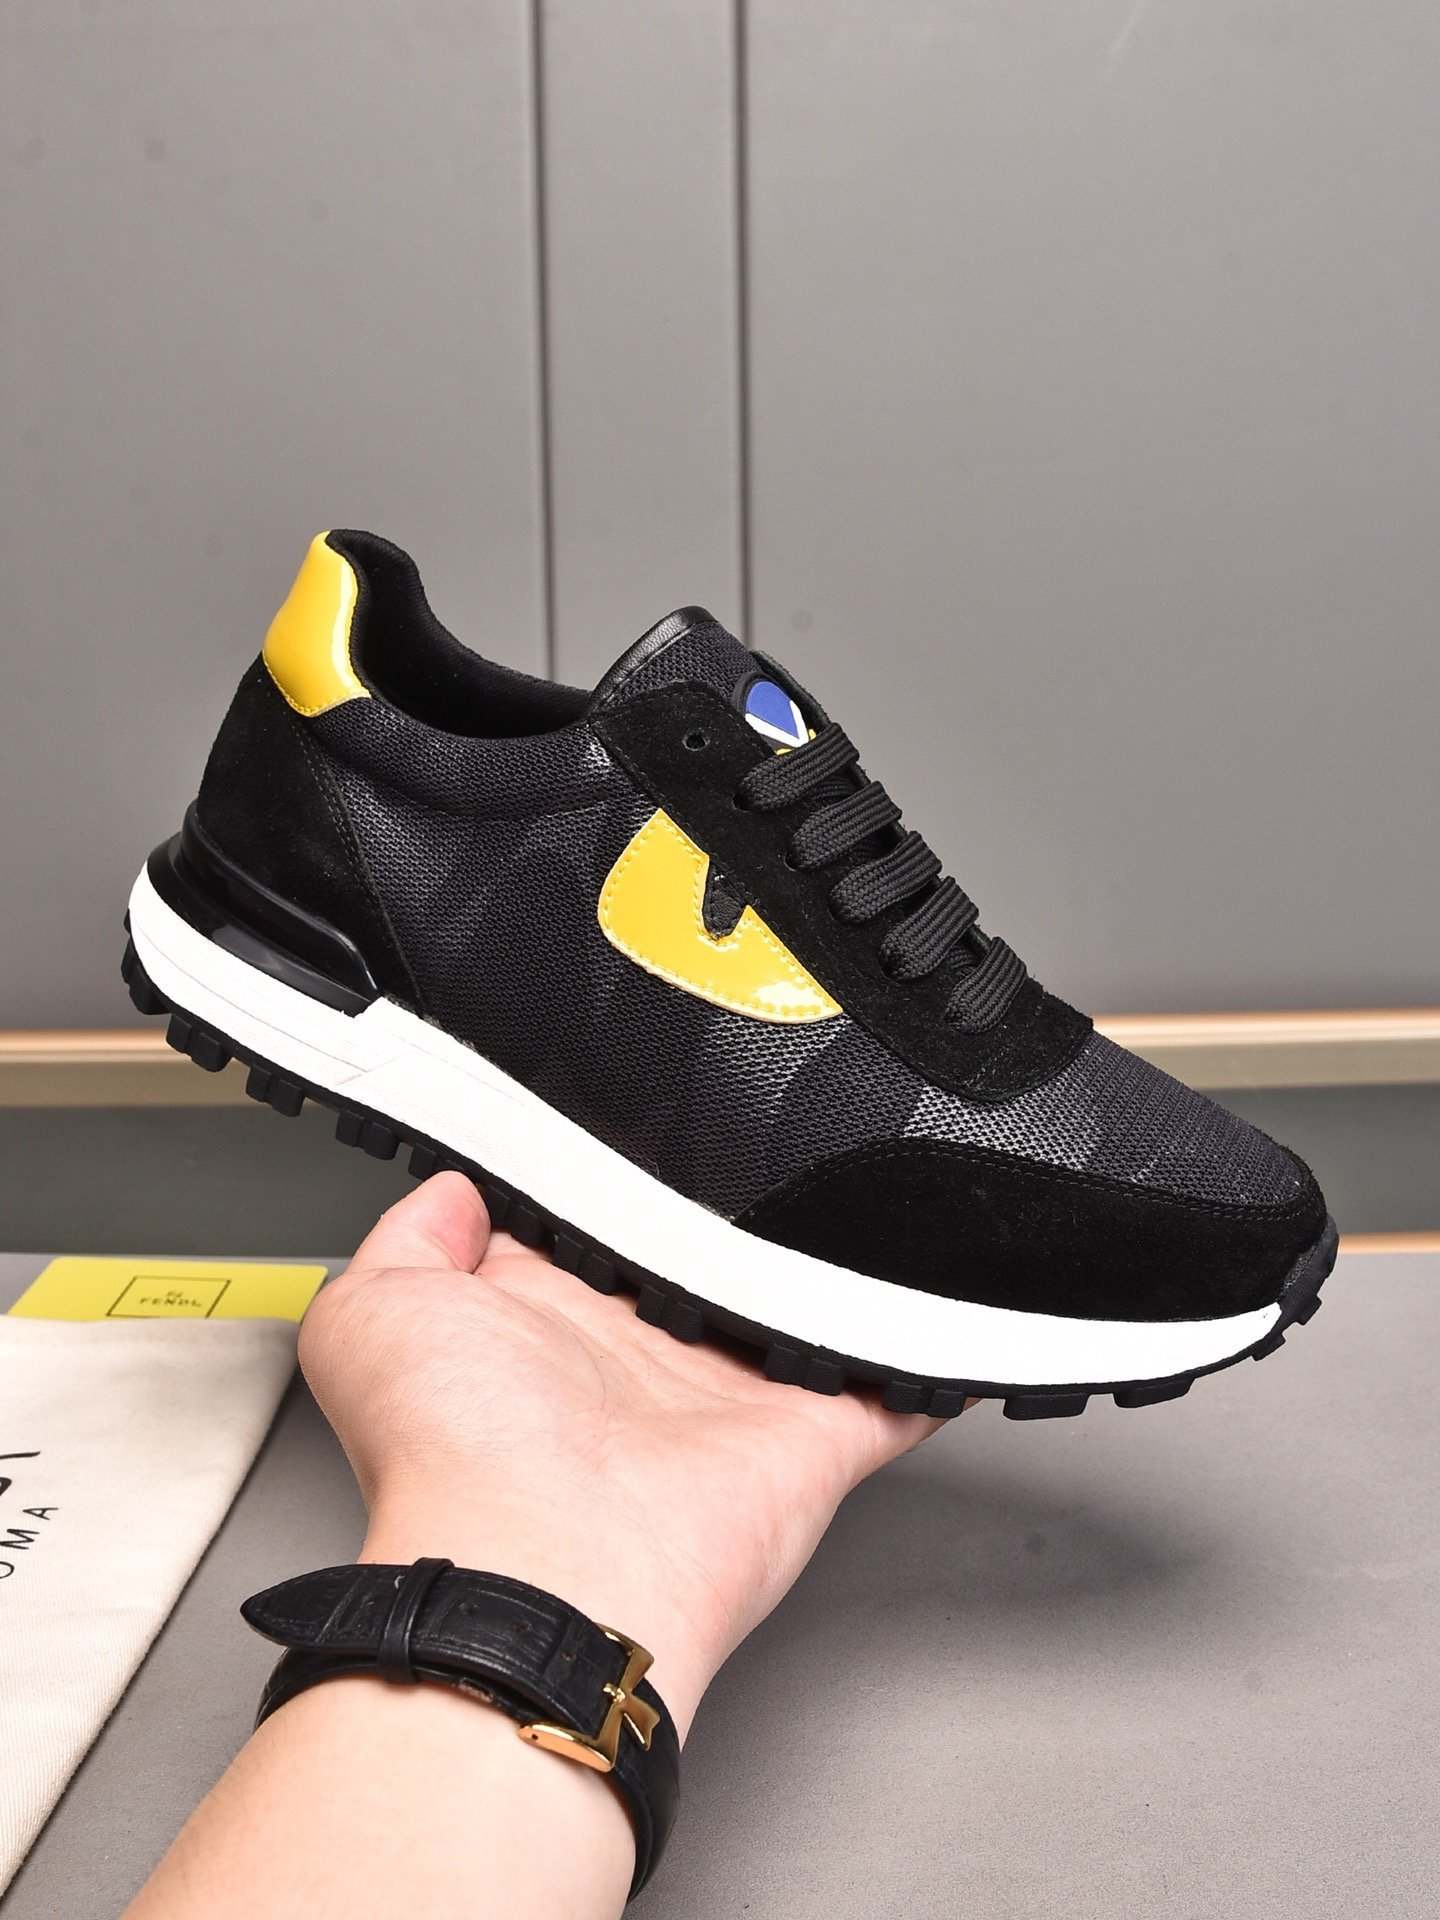 Image of FENDI 2021 Men Fashion Boots fashionable Casual leather Breathable Sneakers Running Shoes0525cx